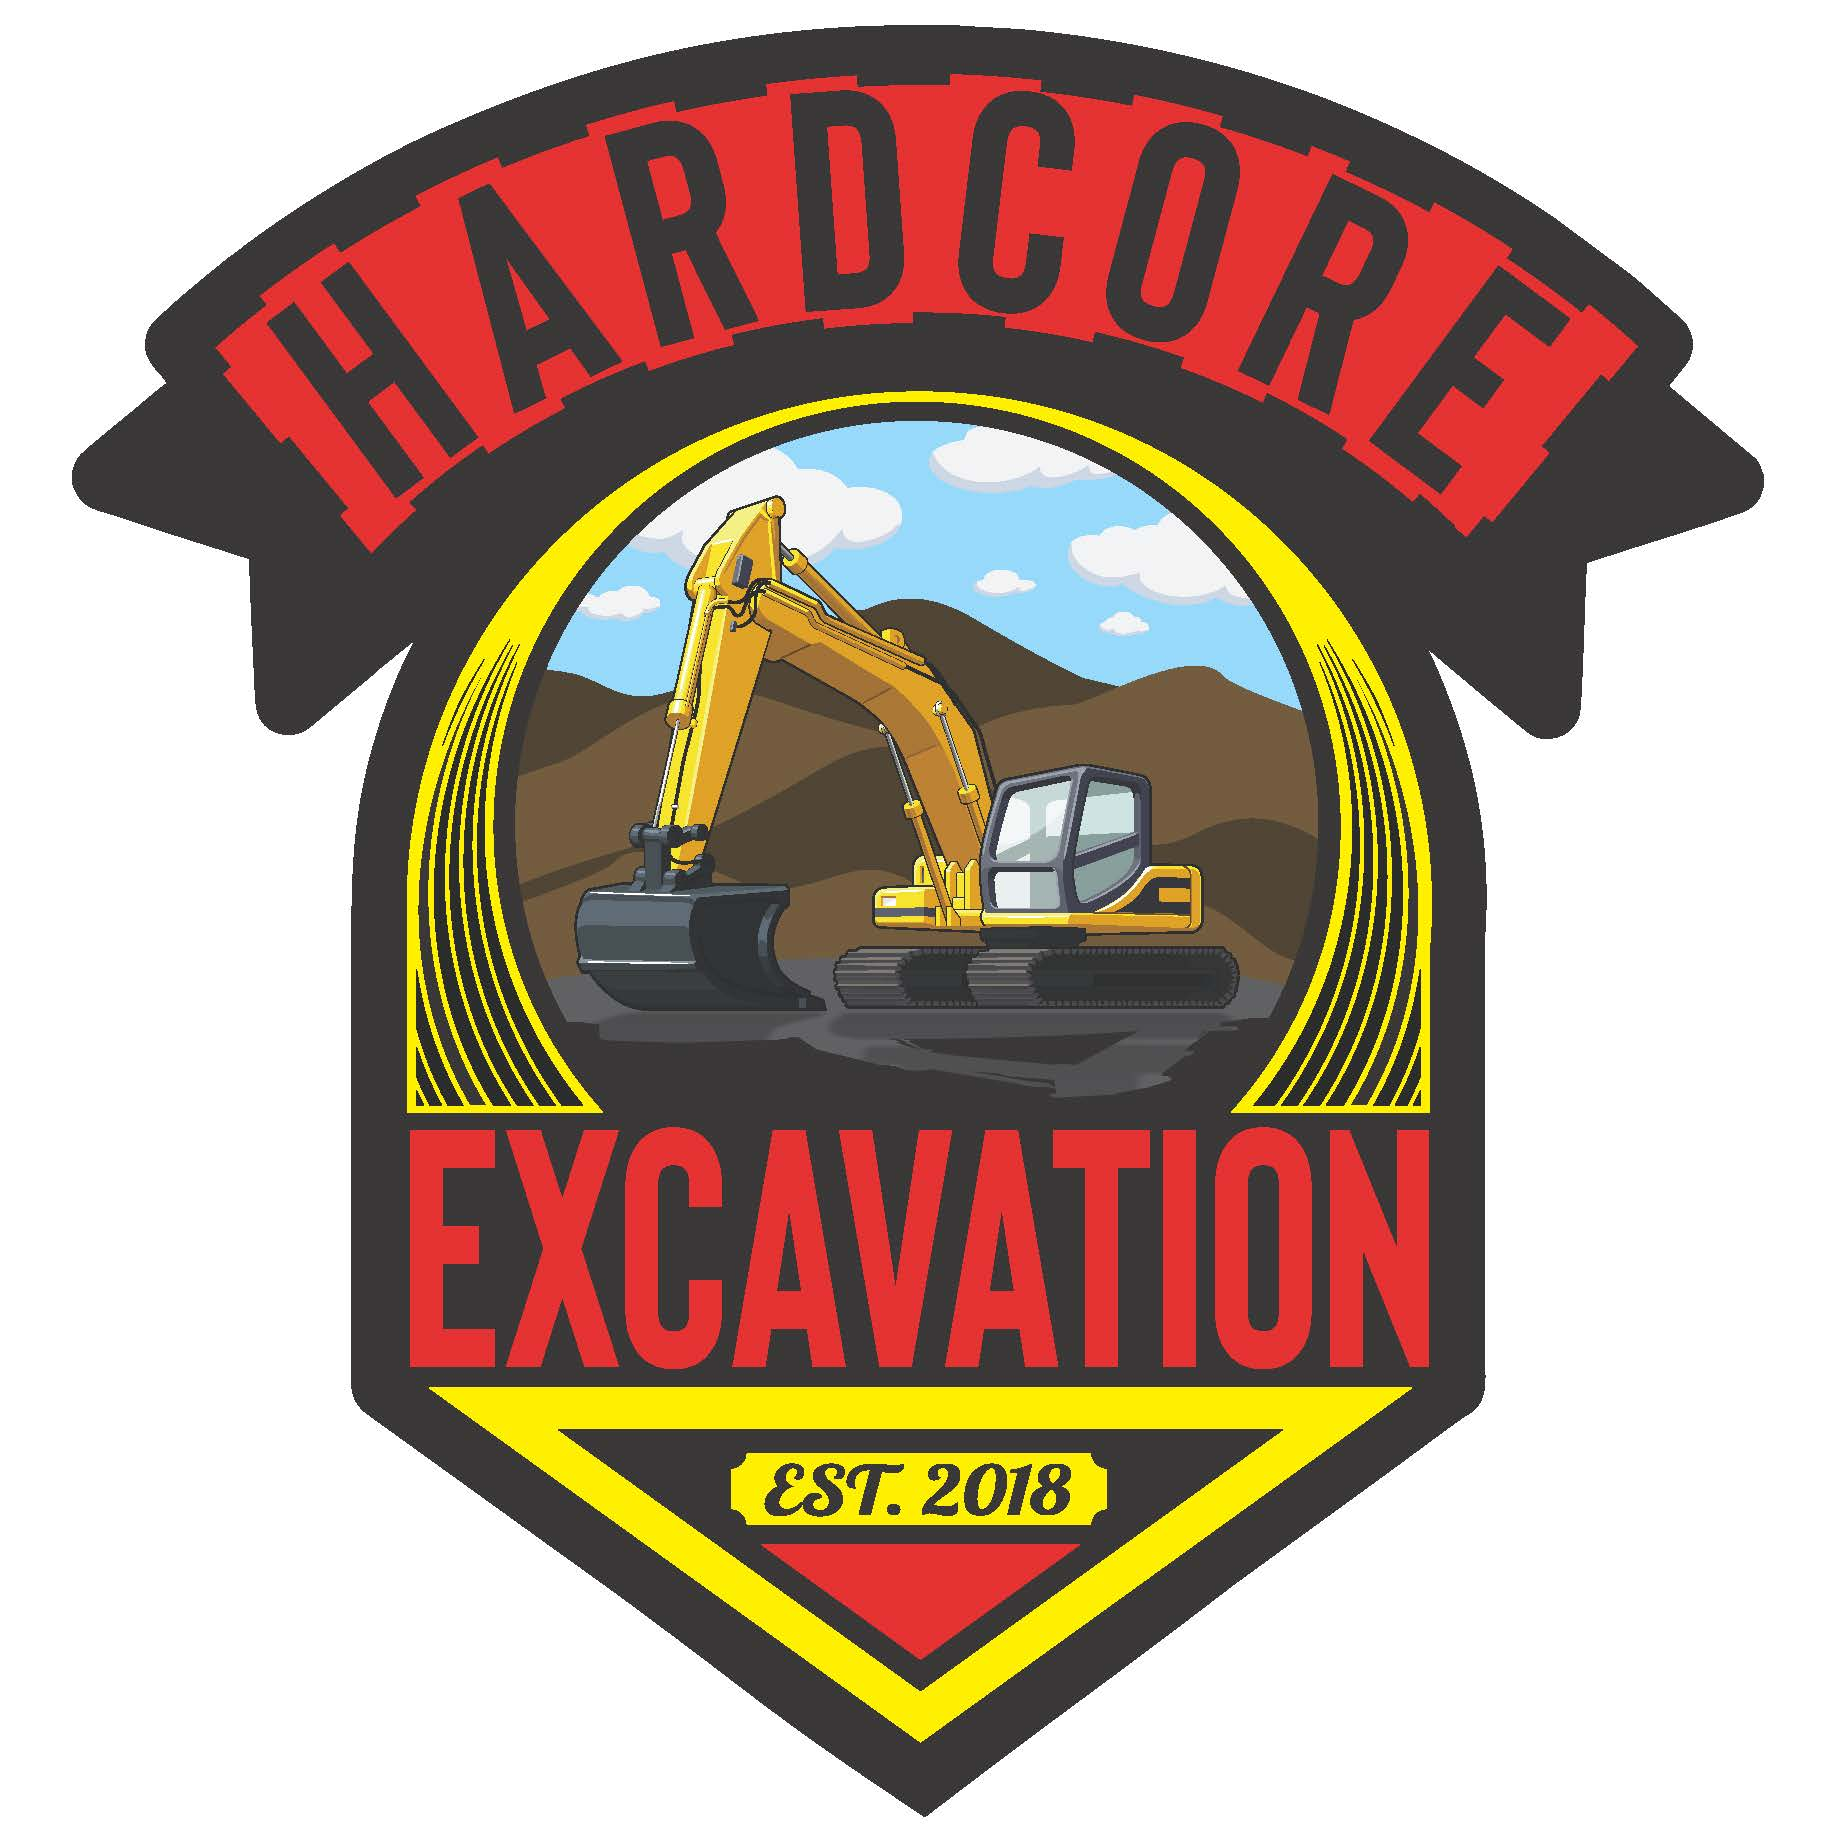 testimonial from Hardcore Excavation